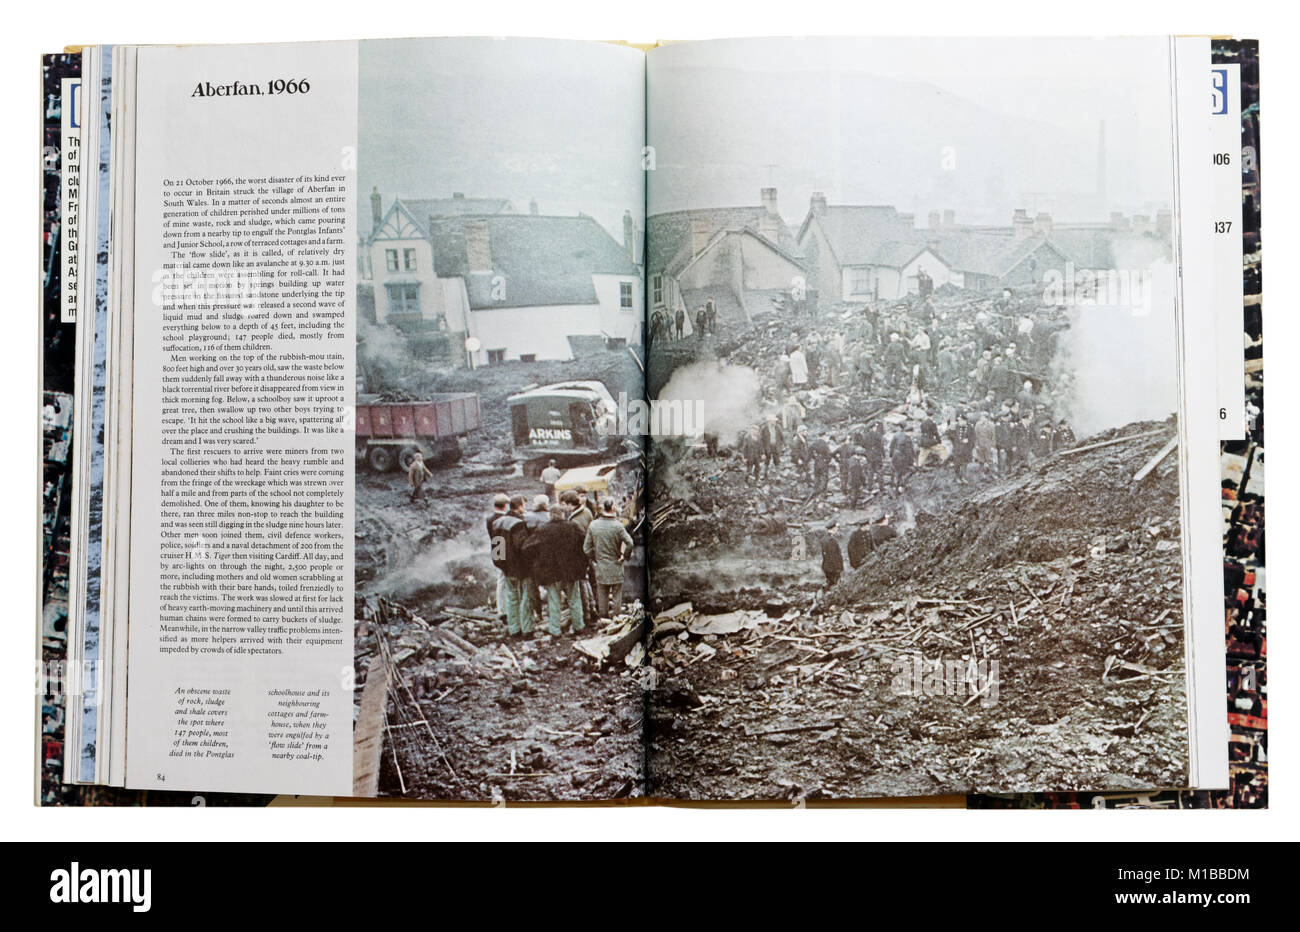 A book of disasters open to the page about the 1966 Aberfan mining disater - Stock Image